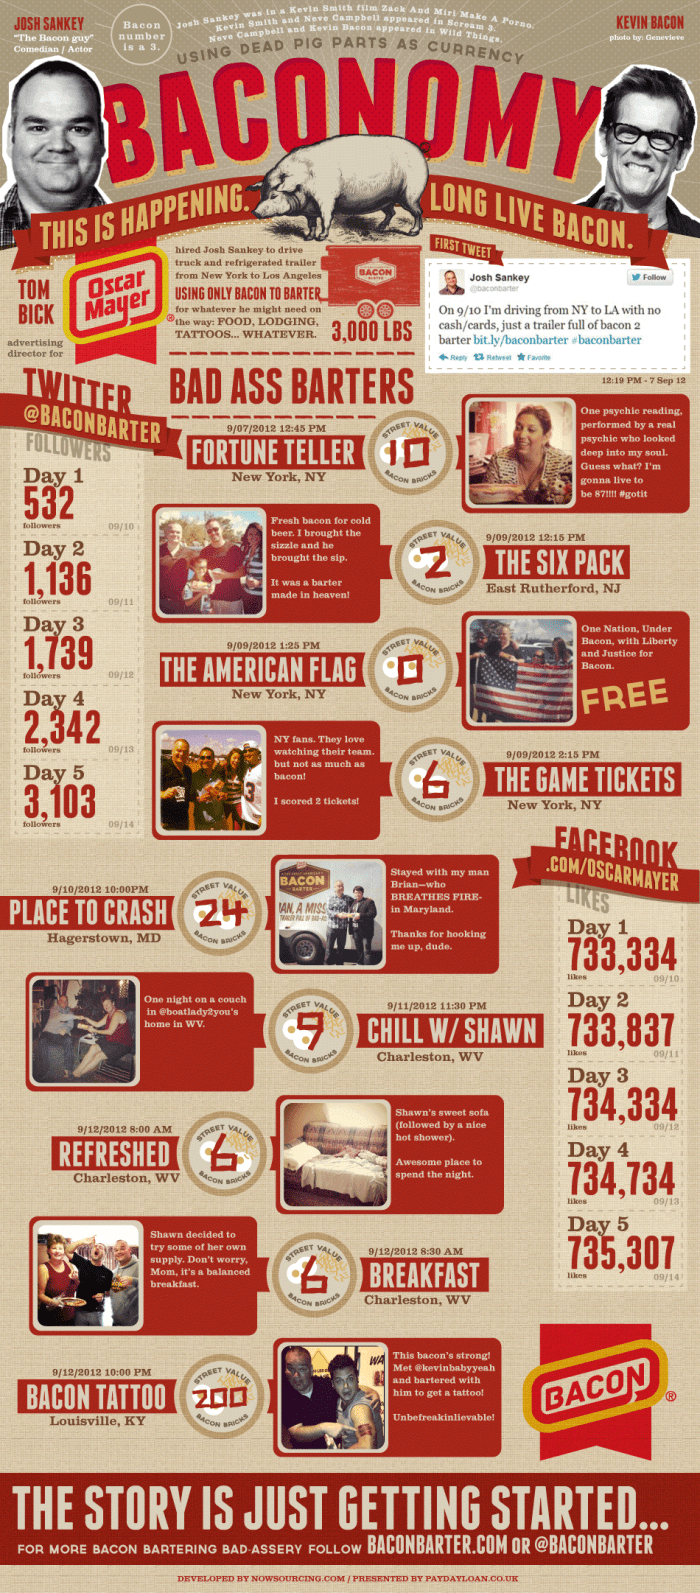 Baconomy: the Art of Bacon Barter [Infographic]